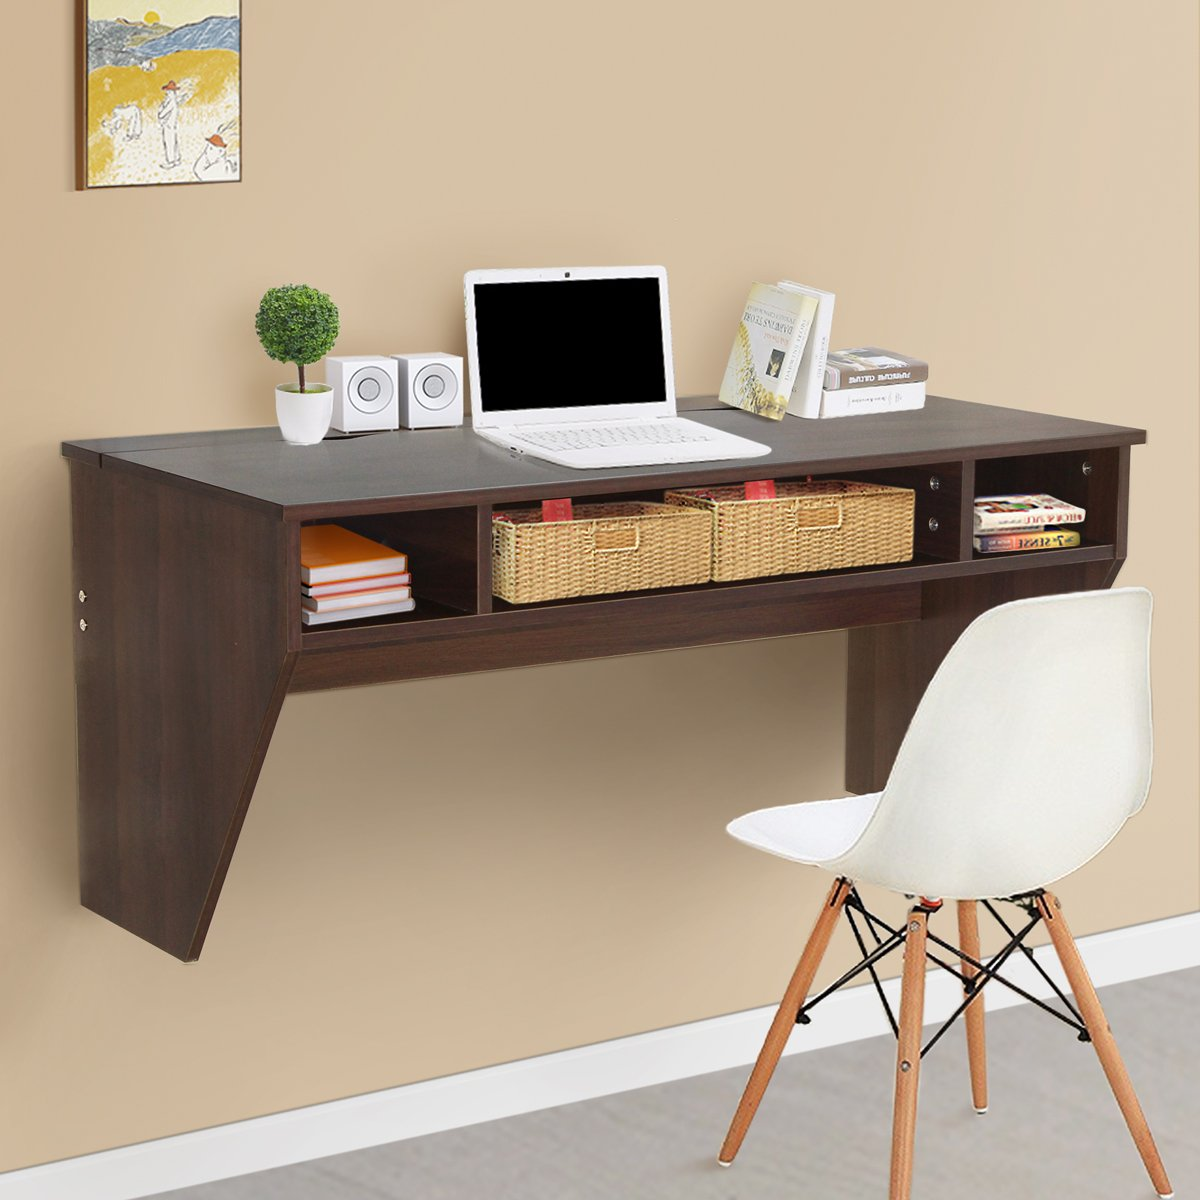 U-MAX Wall Mounted Computer Desk Work Station (Brown)